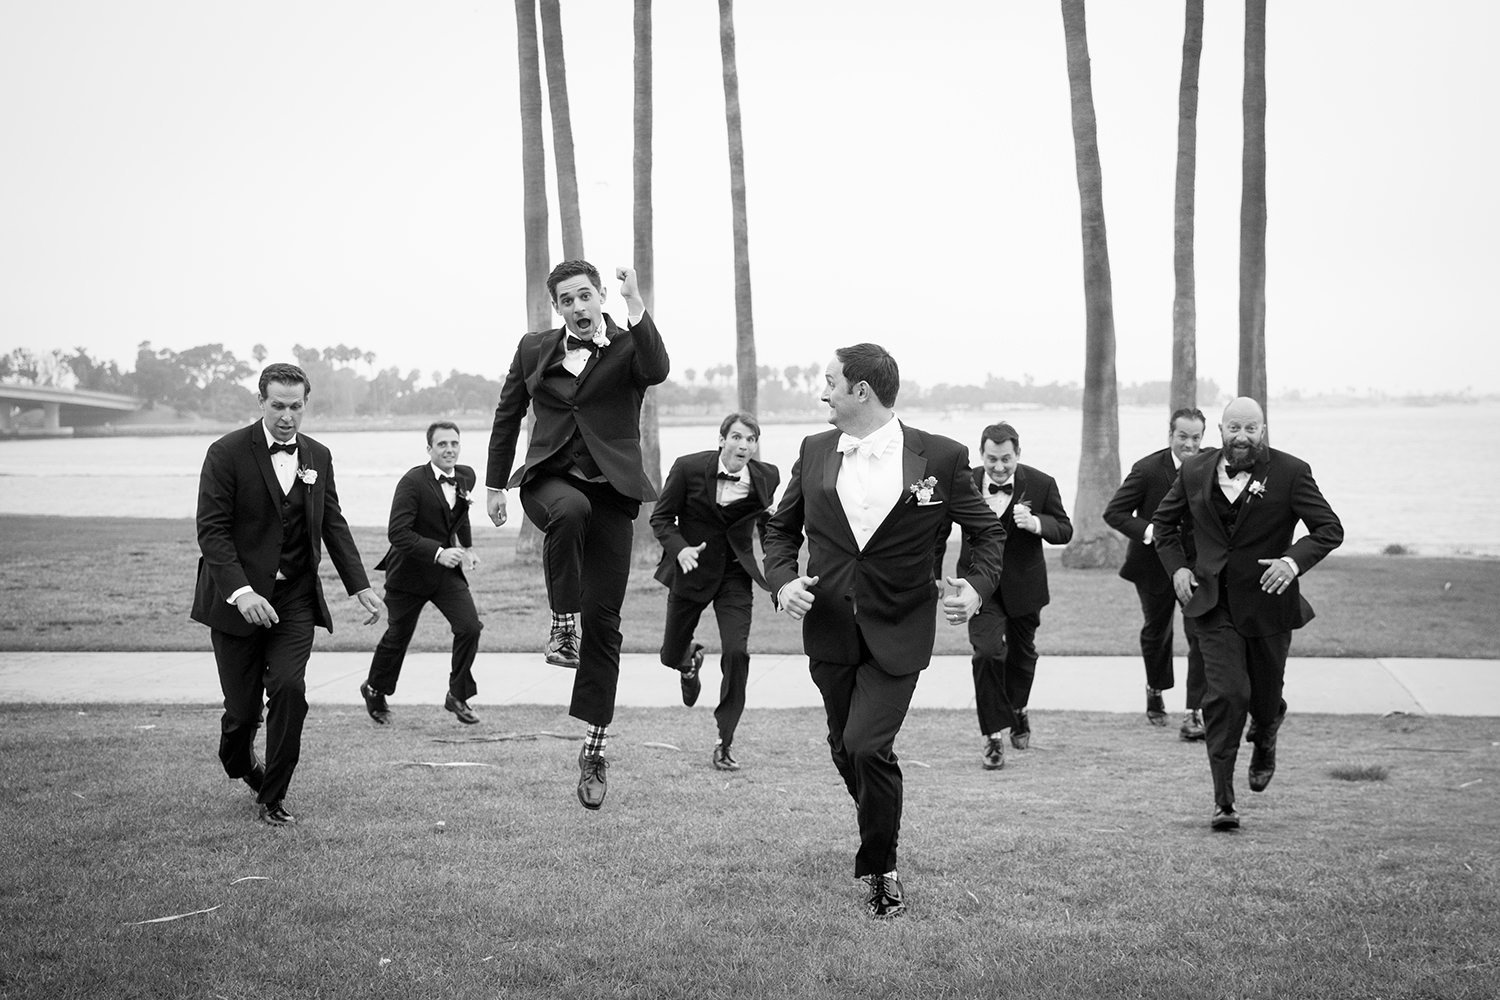 groomsman jumping in the air